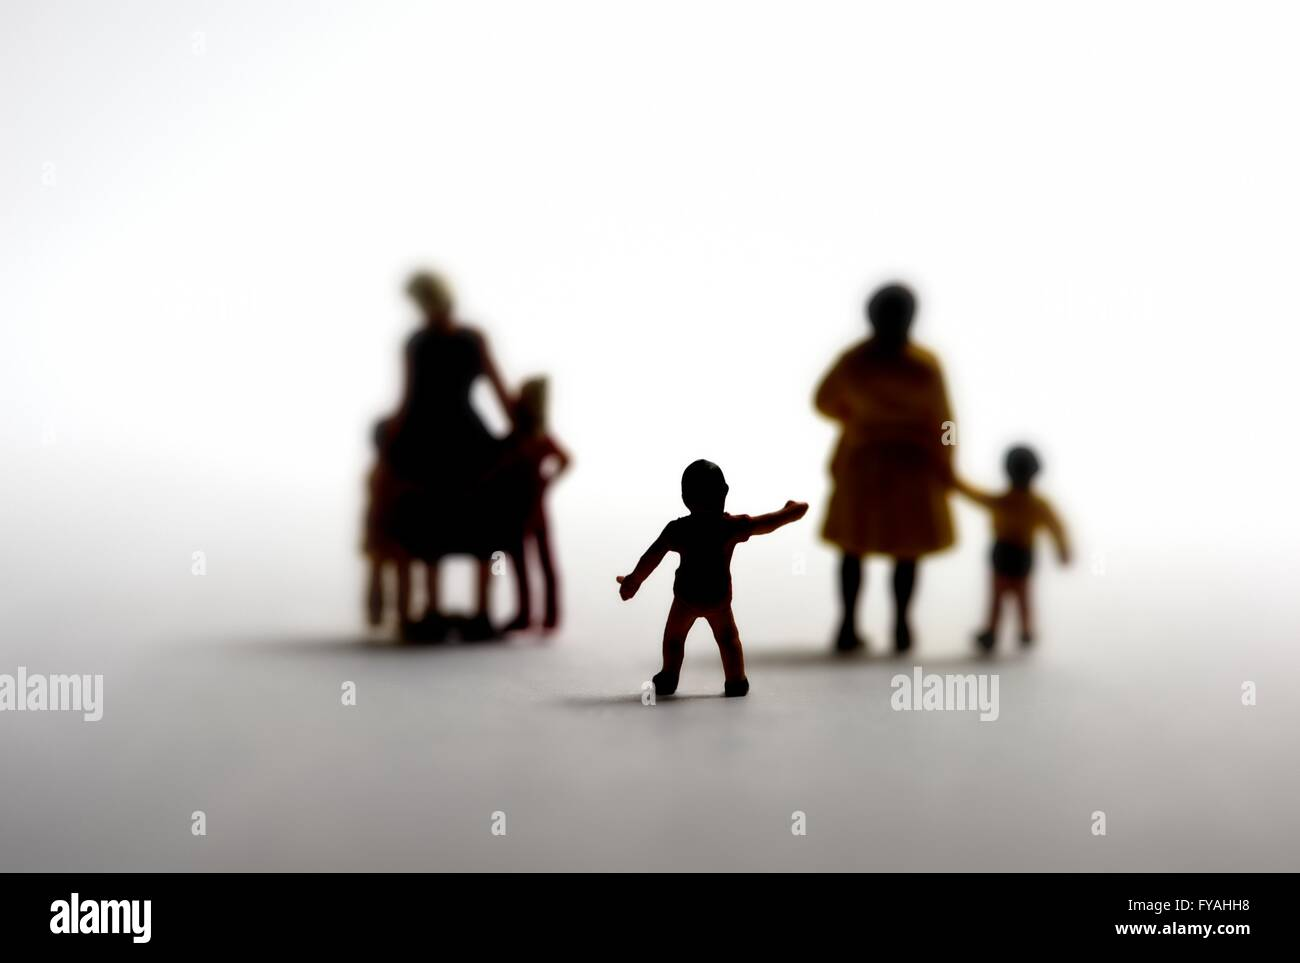 A silhouette of a small boy reaching out to families. Adoption concept - Stock Image